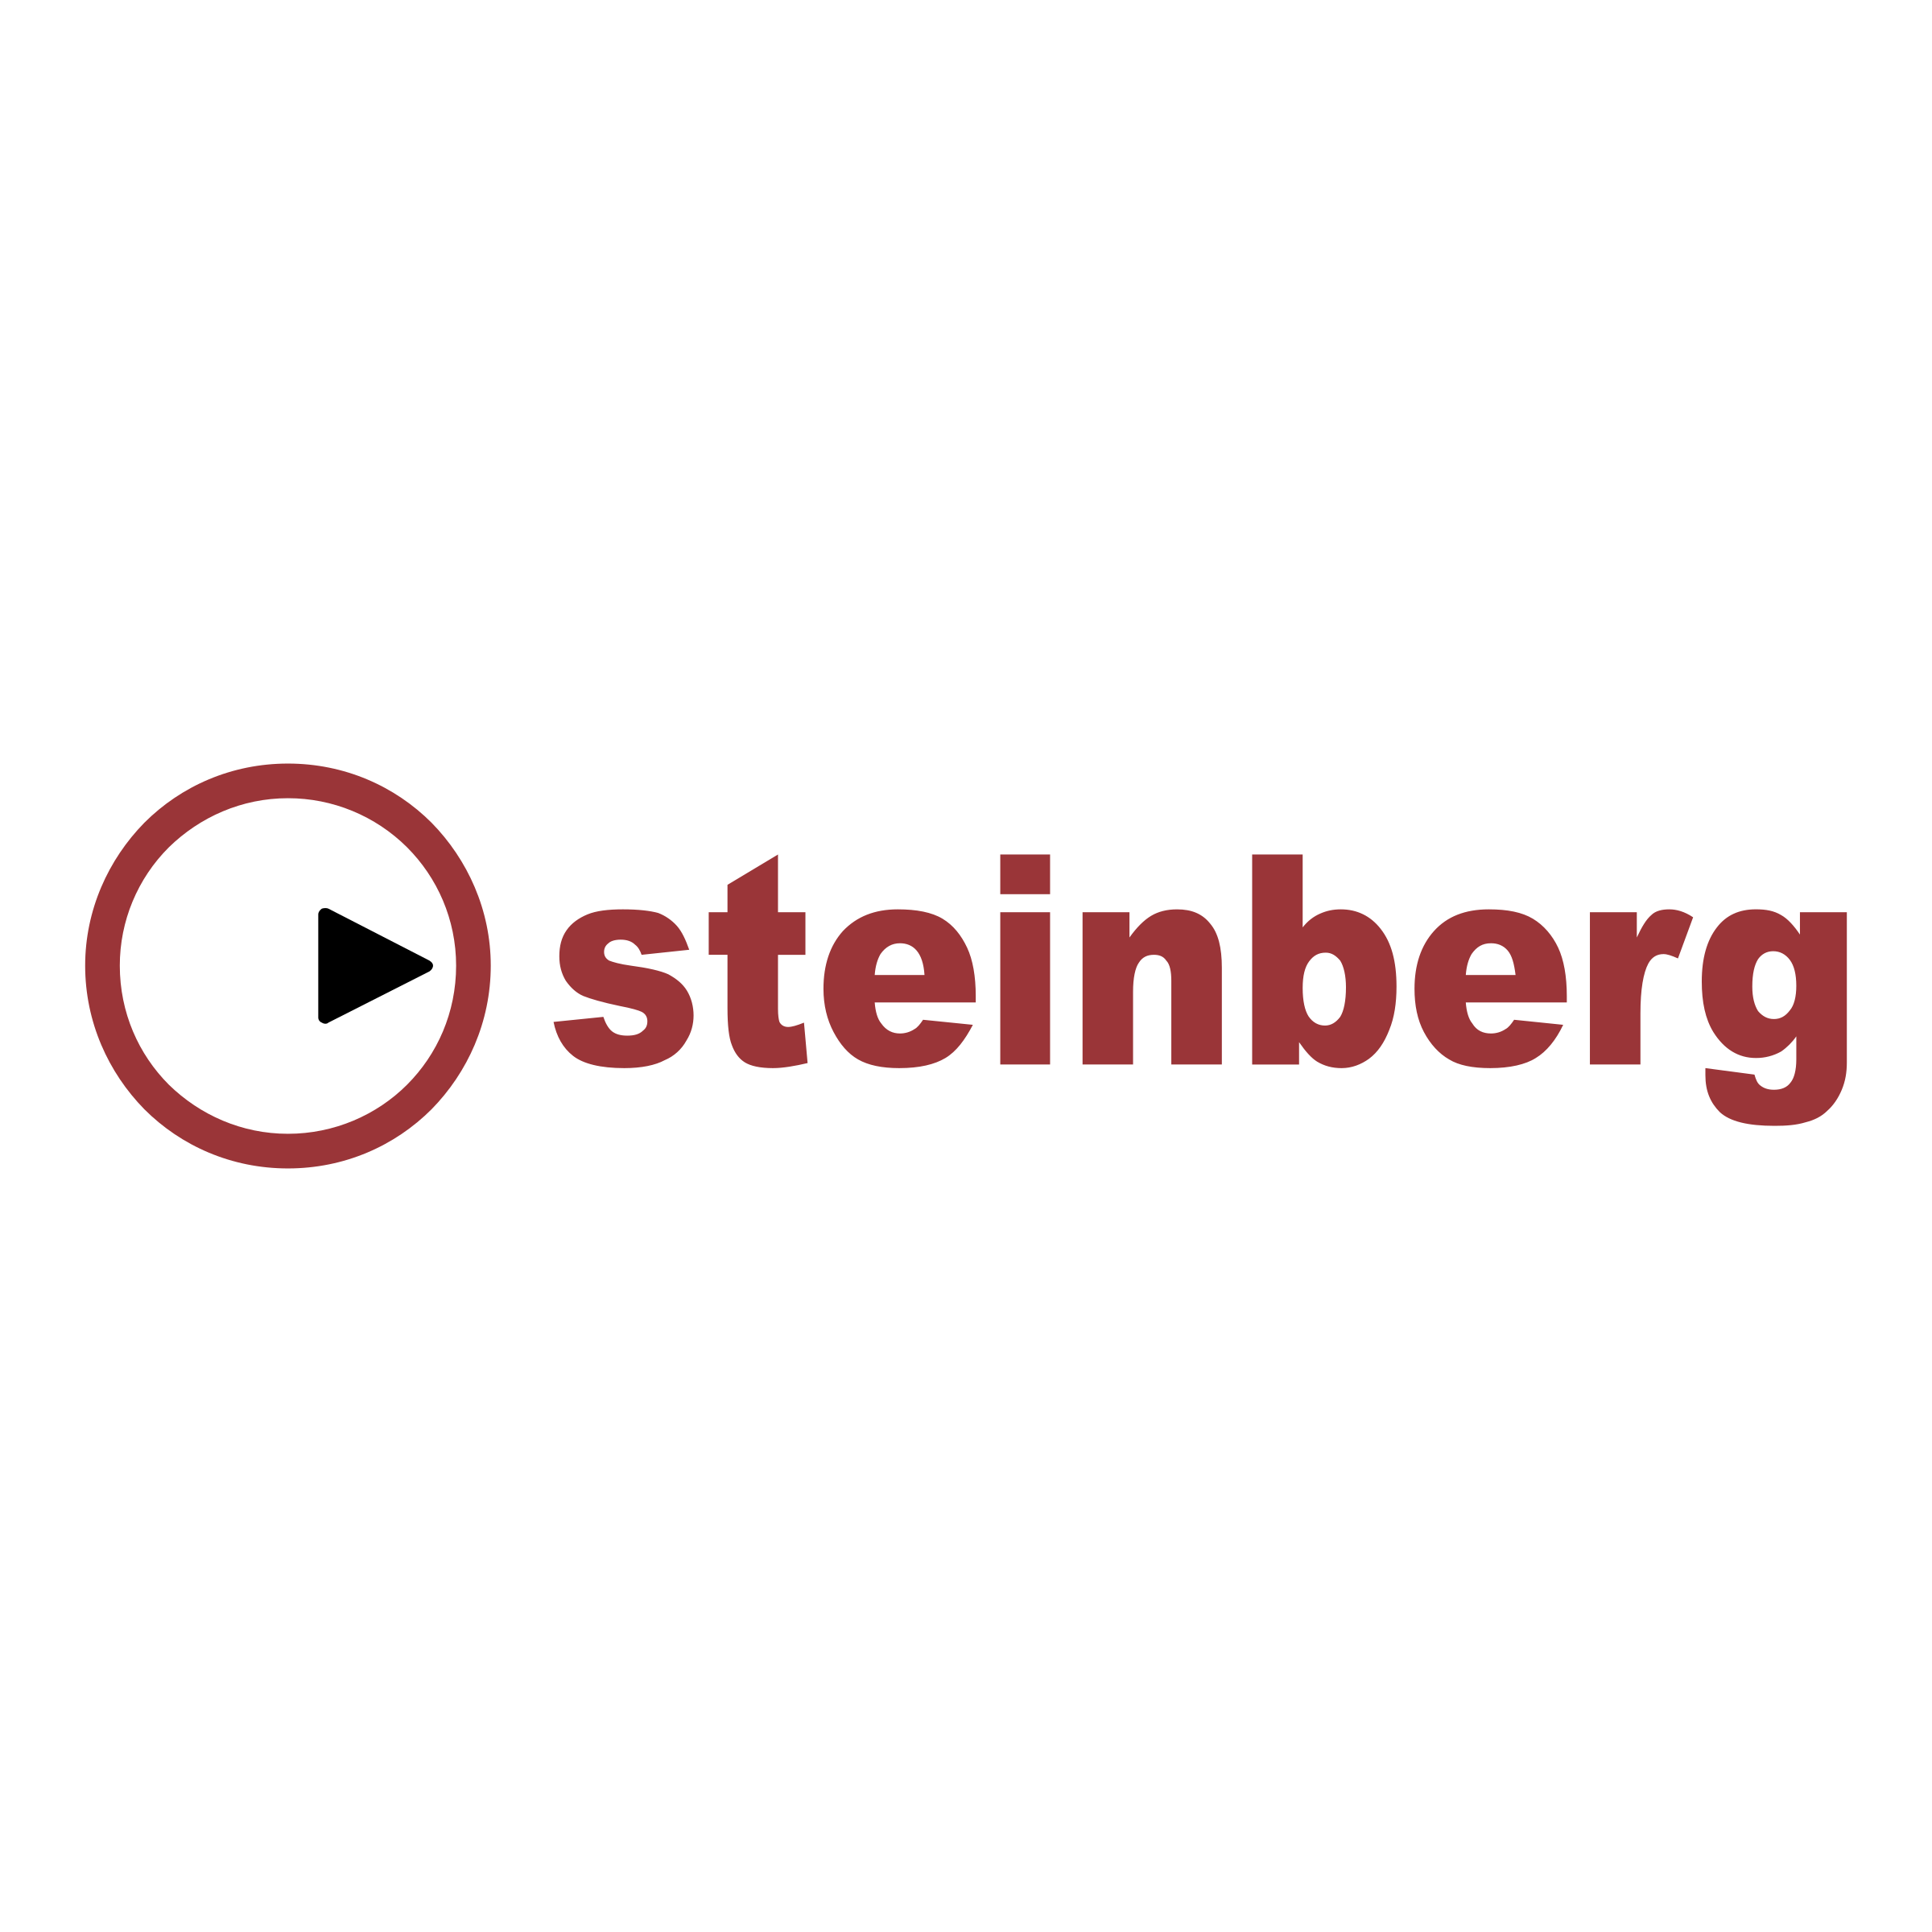 Steinberg SX Logo PNG Transparent & SVG Vector - Freebie Supply